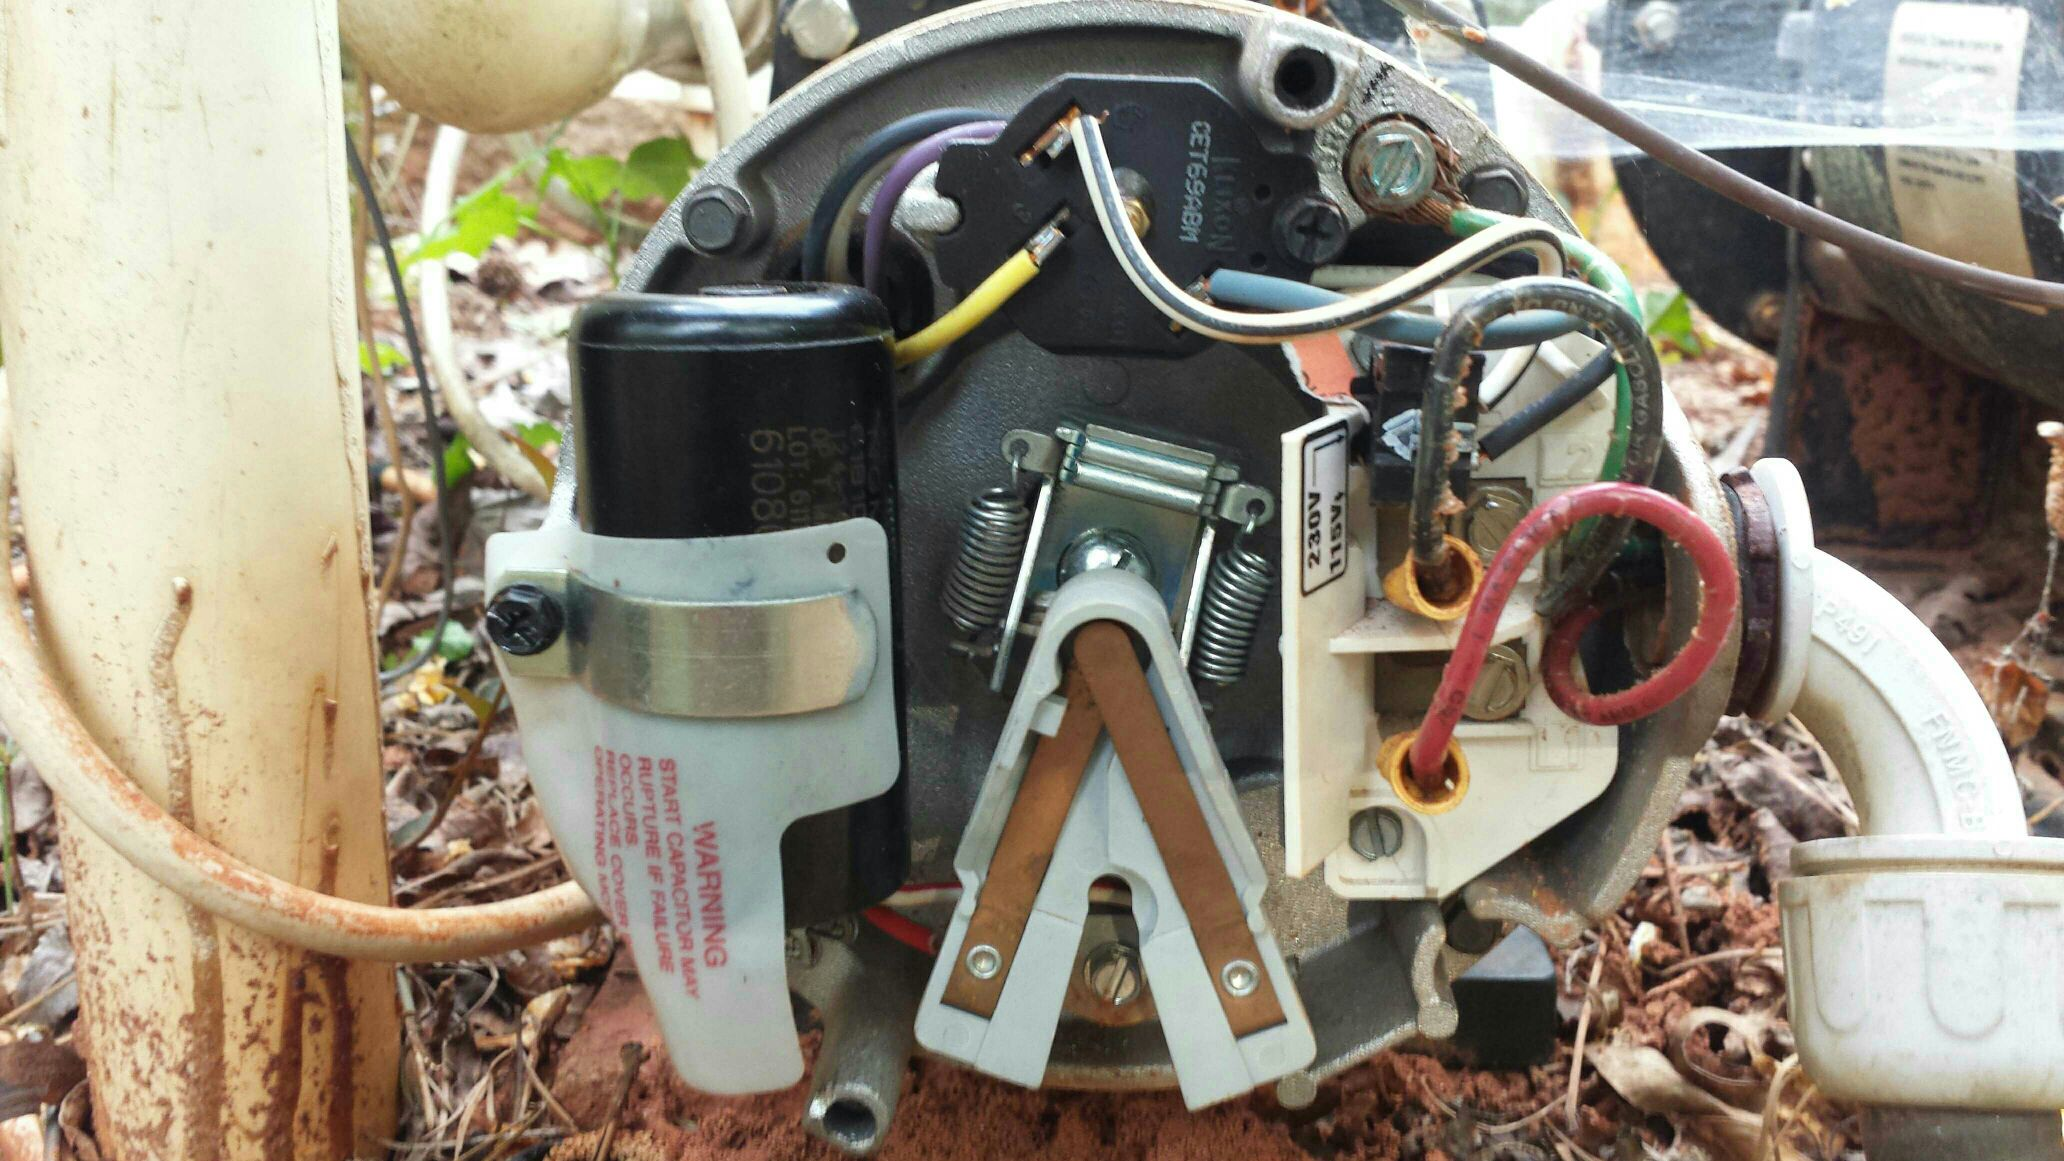 hayward pool pump wiring diagram solidfonts diagram century motors used in ultra jet wiring for pool pump solidfonts